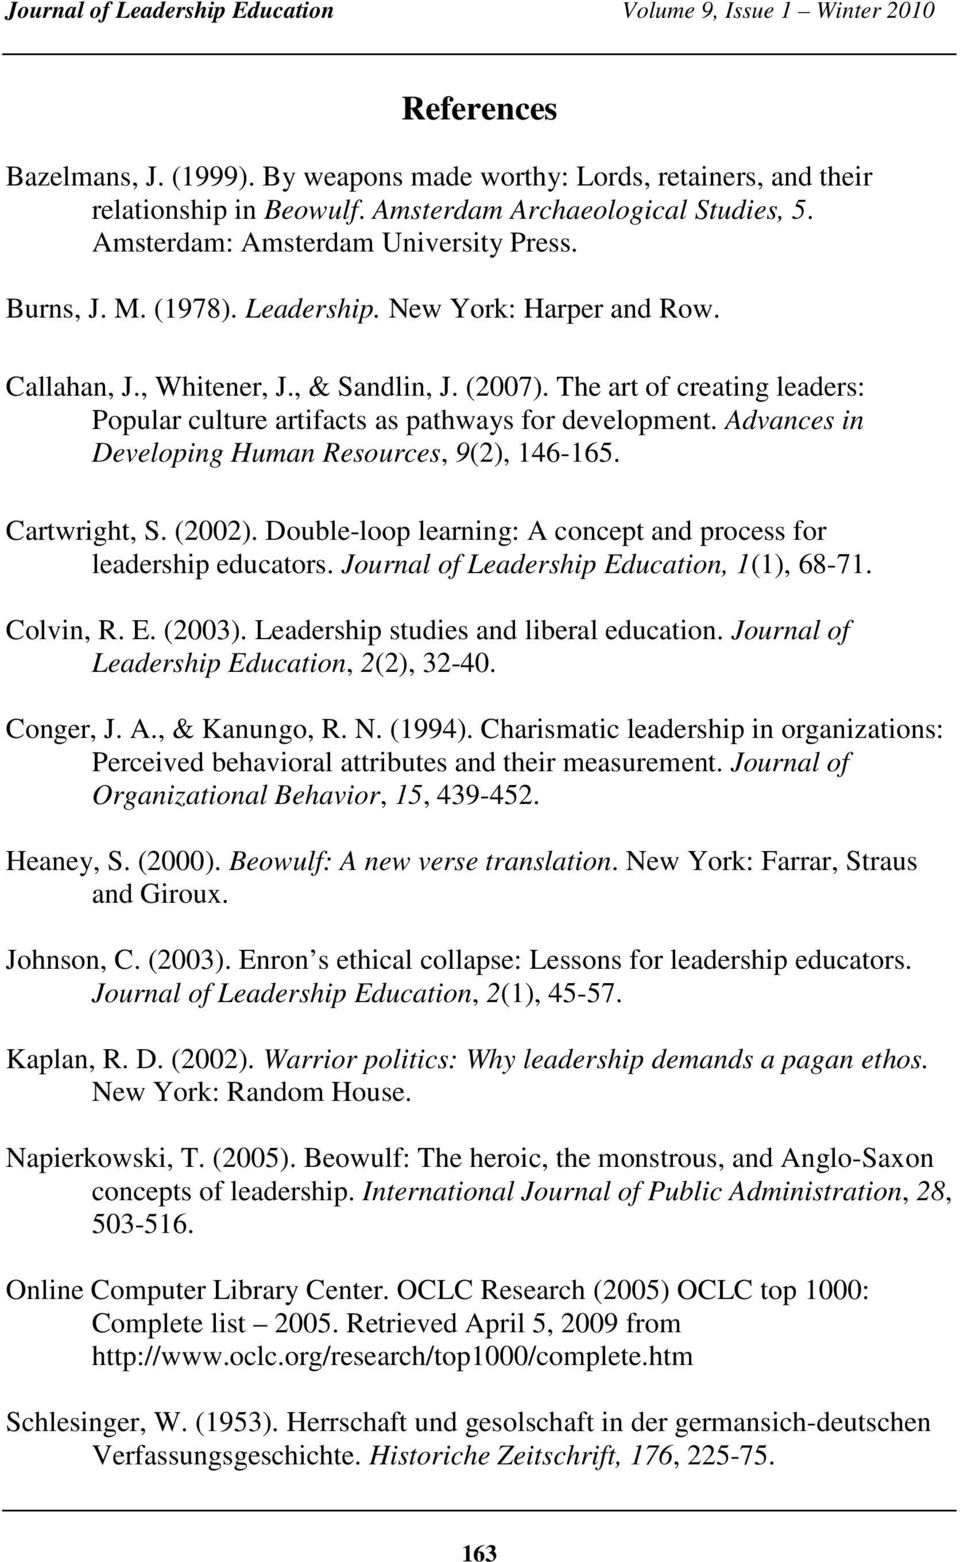 Beowulf and the Teaching of Leadership - PDF